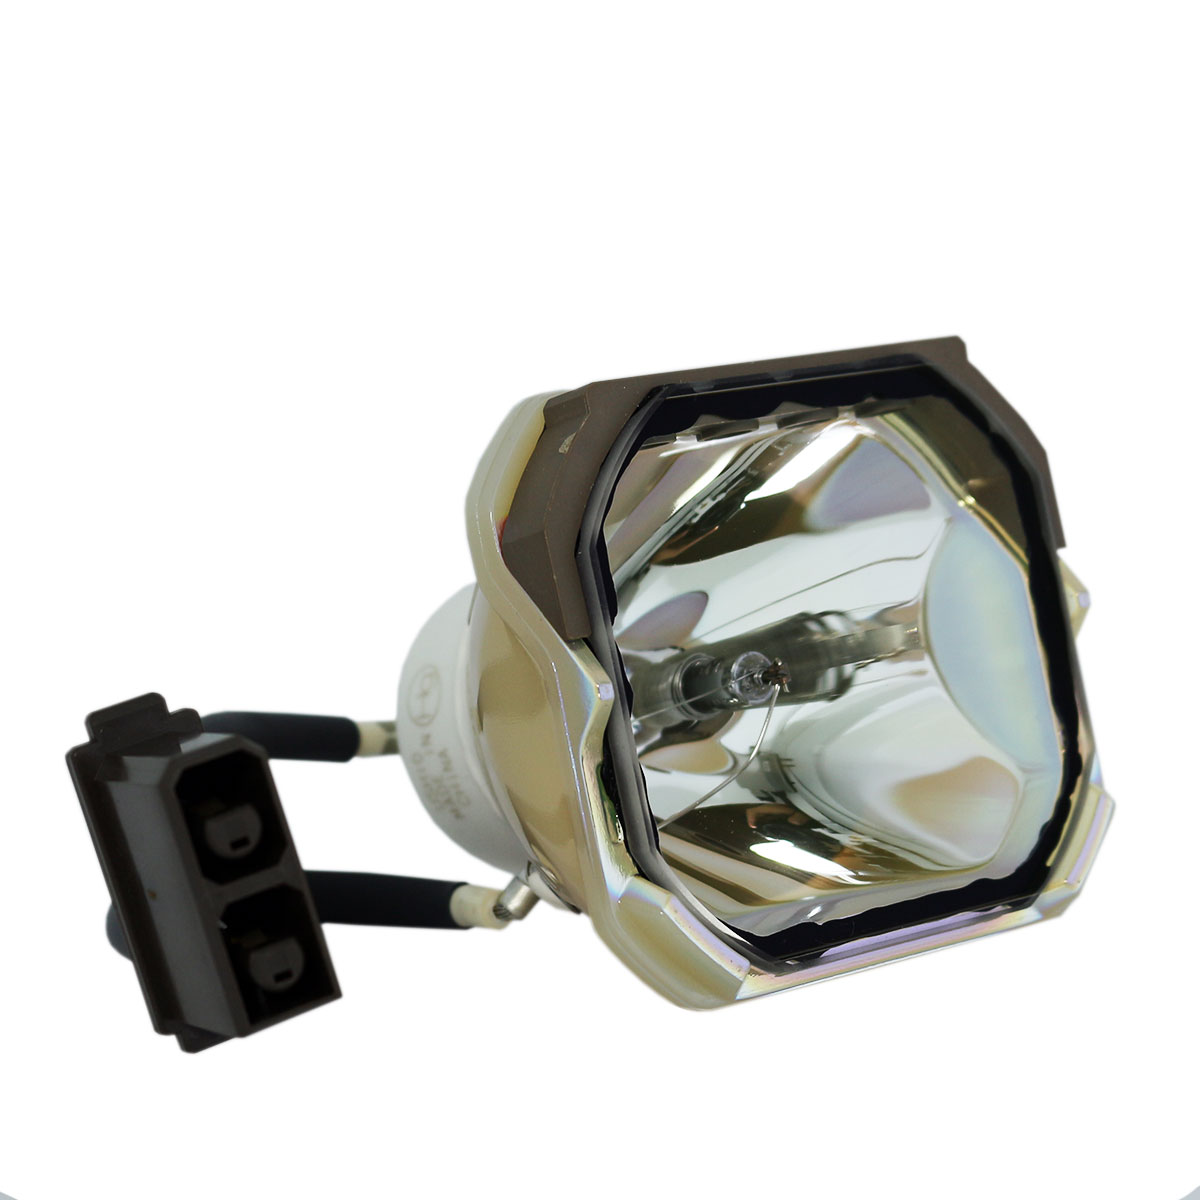 Compatible Bare Bulb EP1635 78-6969-8919-9 for 3M MP8670 MP8745 MP8755 MP8760 MP8770 Projector Lamp Bulb without housing compatible bare bulb 78 6969 9947 9 for 3m x76 wx66 projector lamp bulb without housing free shipping